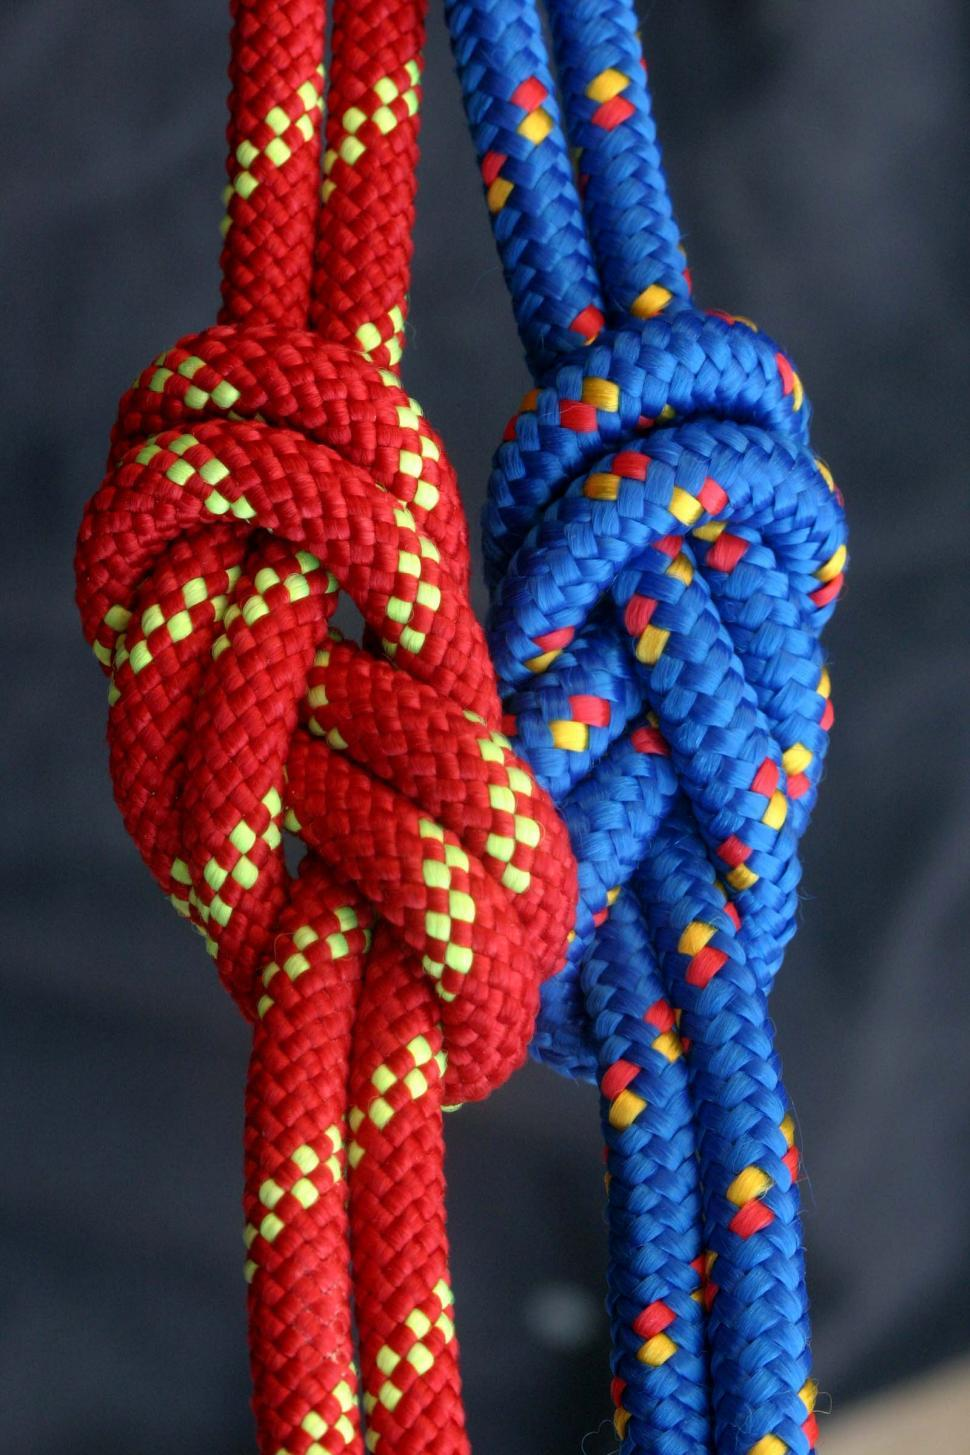 Download Free Stock HD Photo of Side by side figure eight knots Online